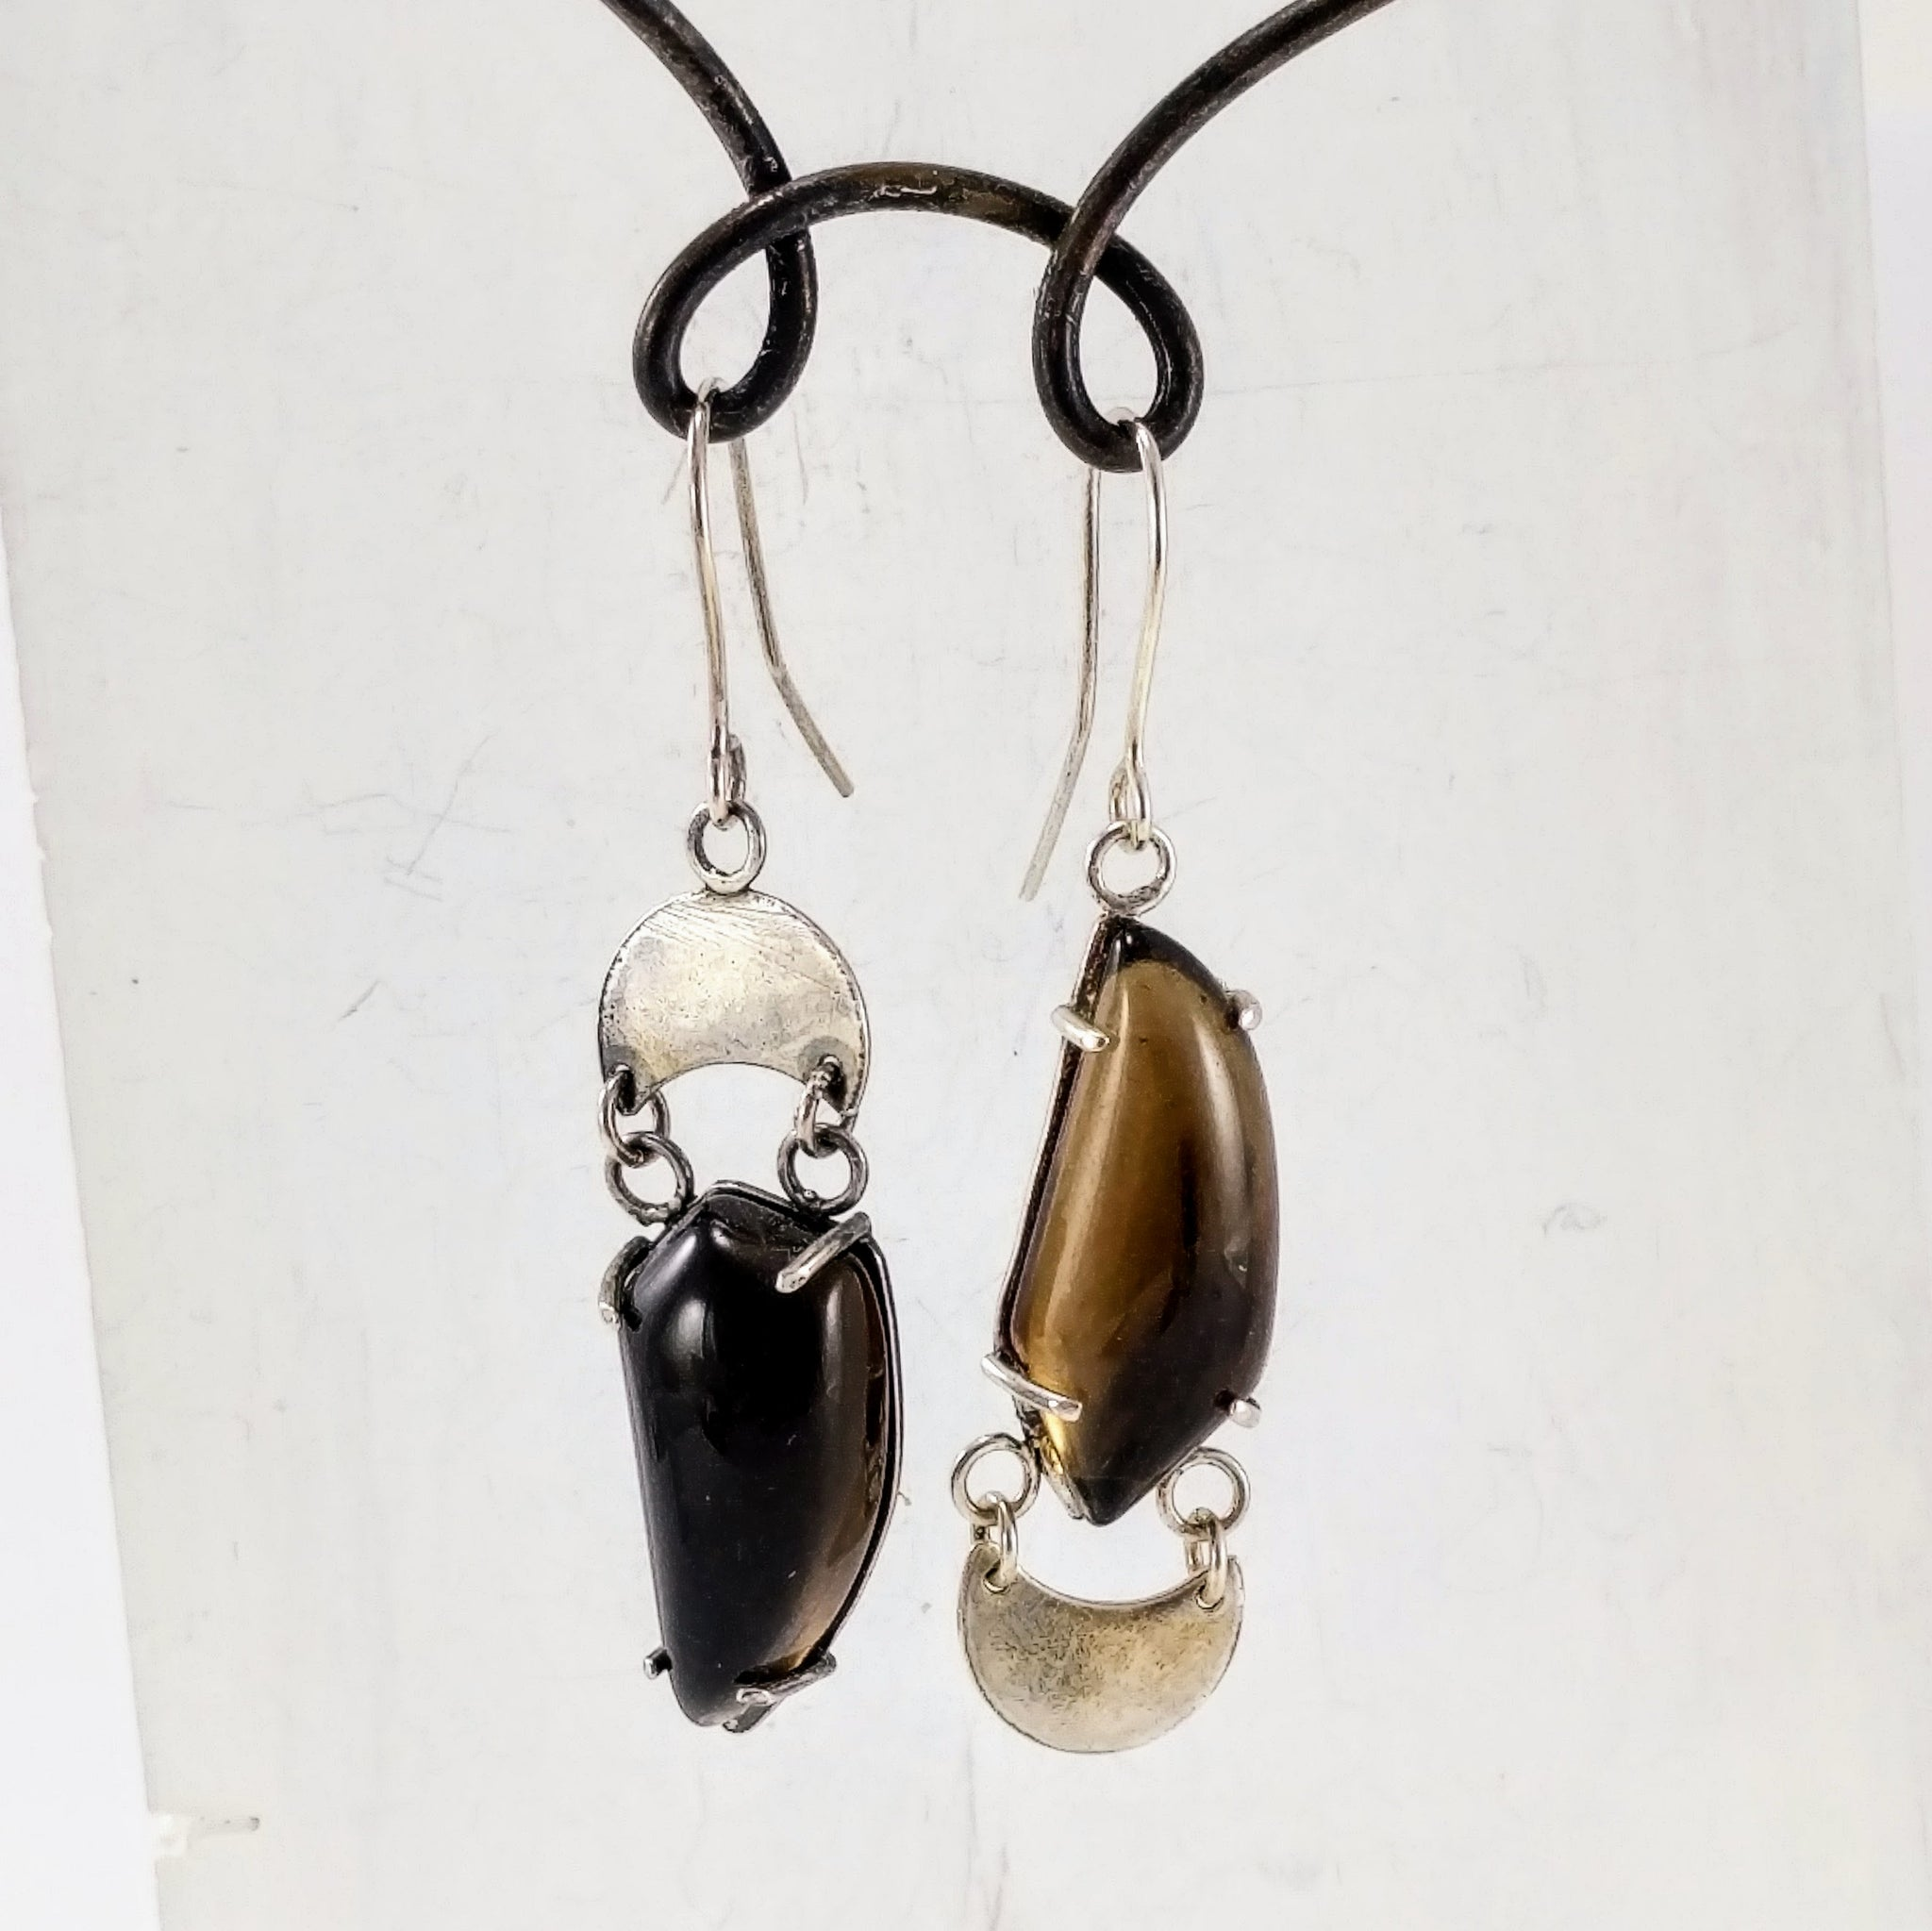 Celestial Phase Earrings with Smokey Quartz by Buster Collins